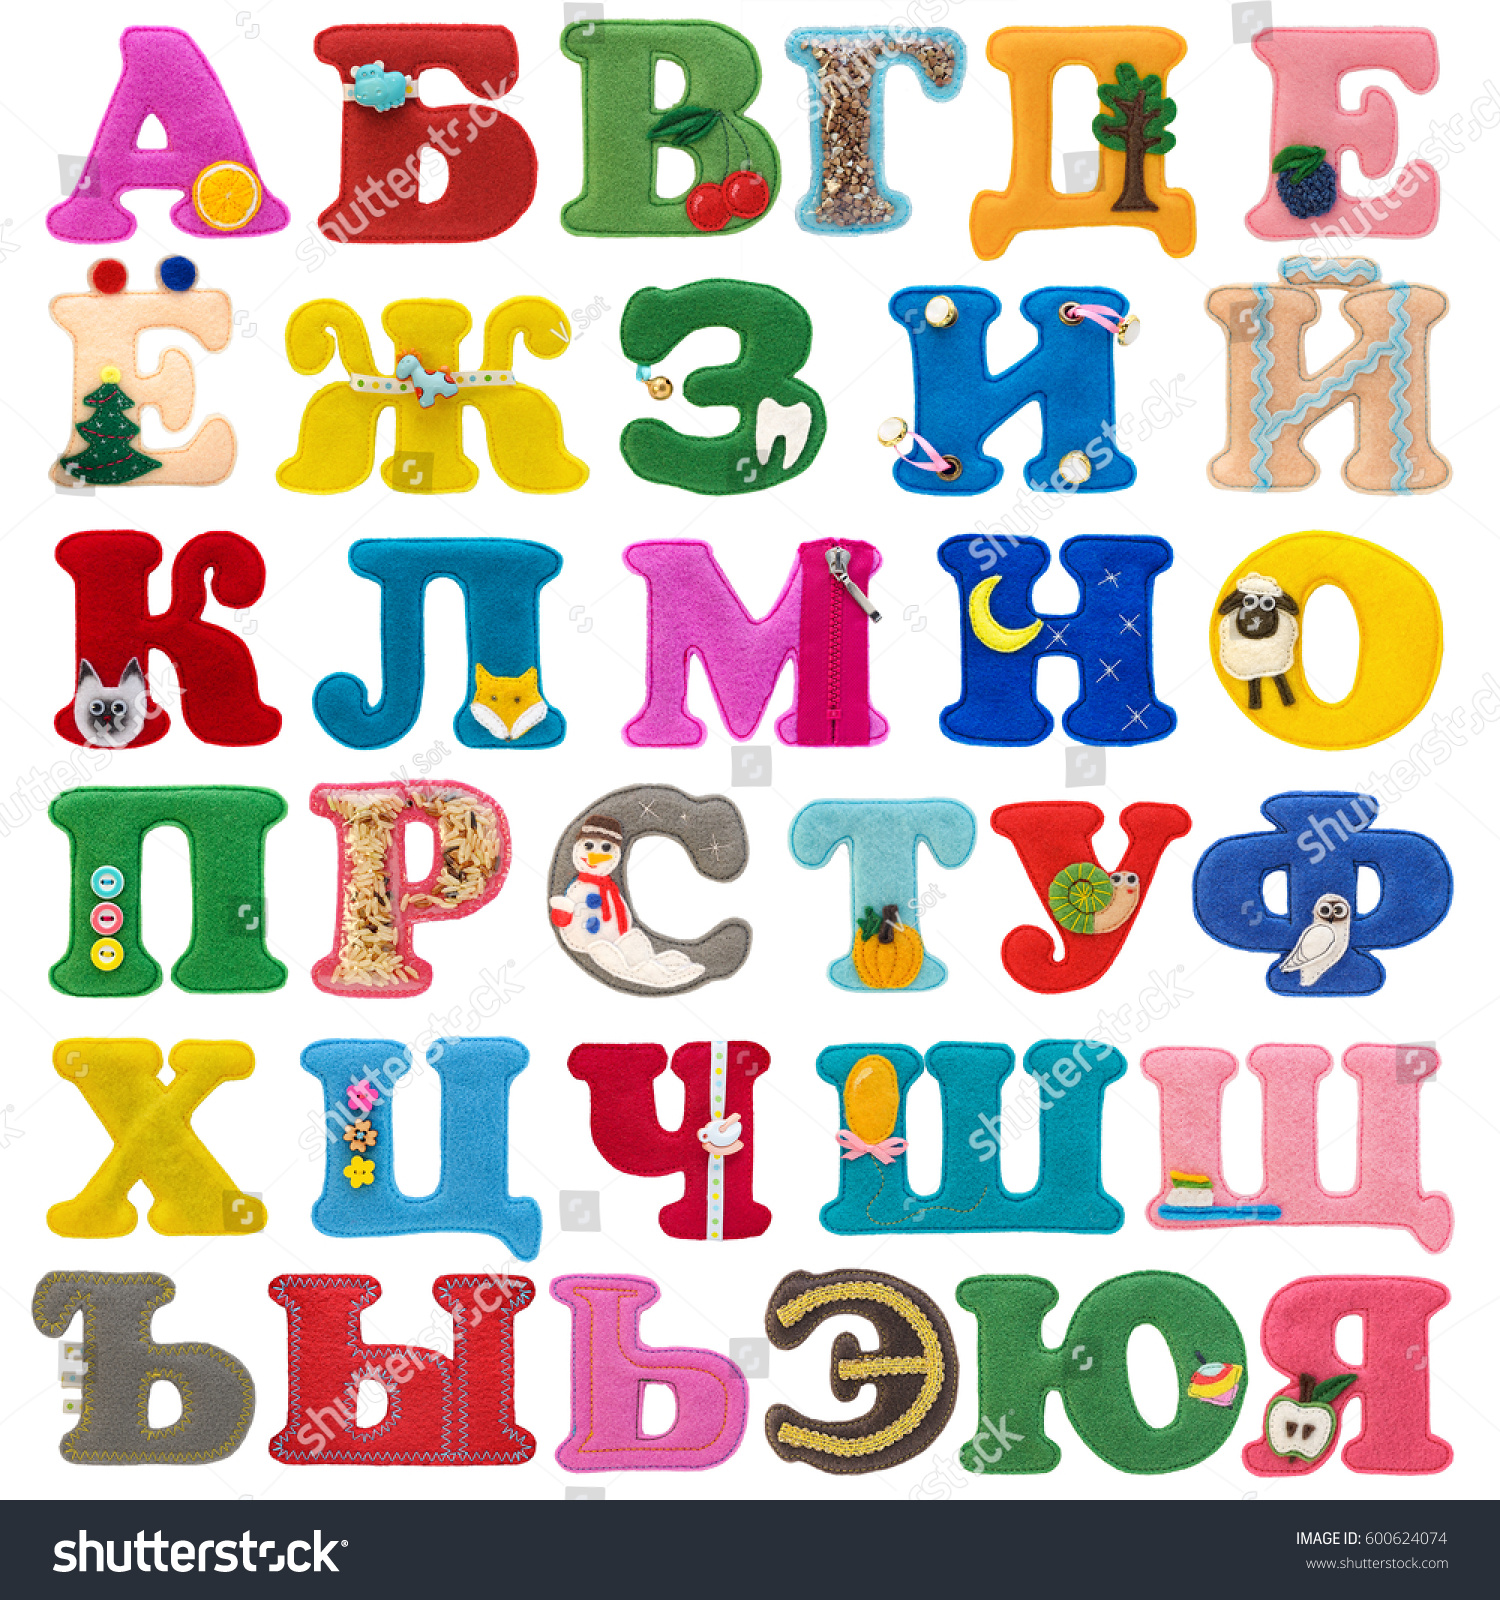 Handmade Cyrillic Alphabet Felt Isolated On 600624074 on Preschool Color Green